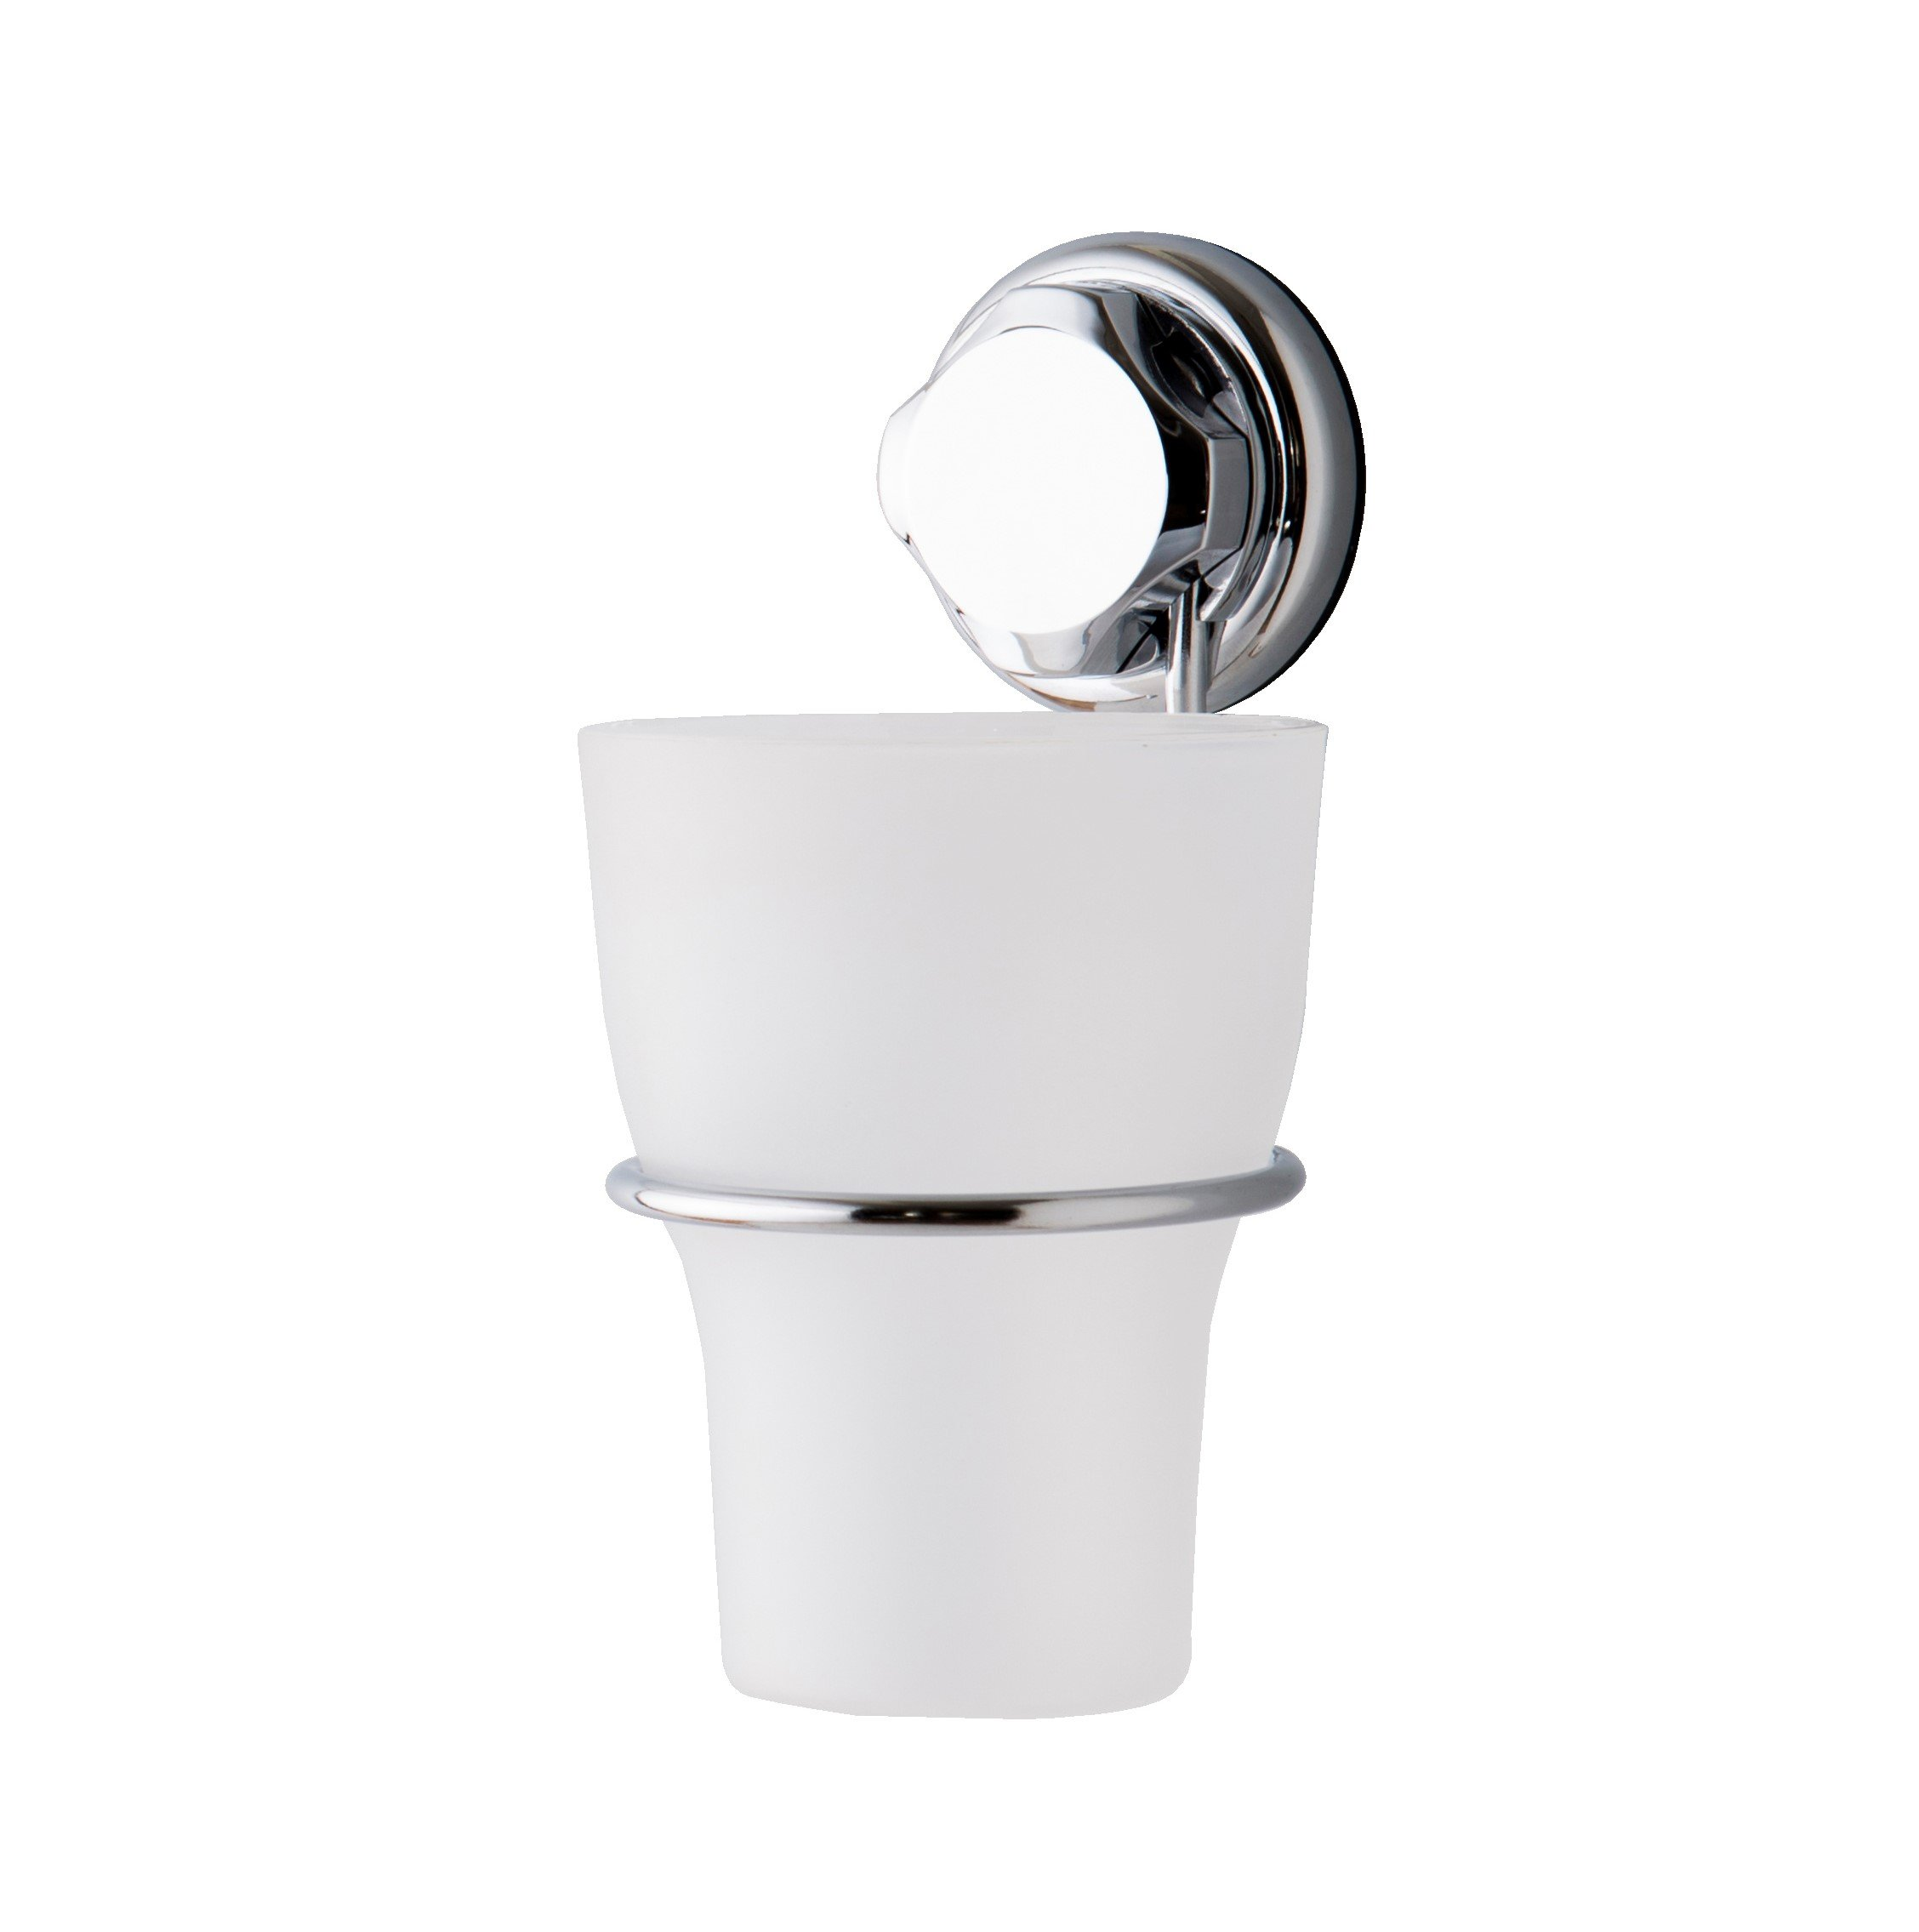 Compactor Bestlock Suction No Drilling Wall Mountable Toothbrush Holder with Cup, Chrome and White